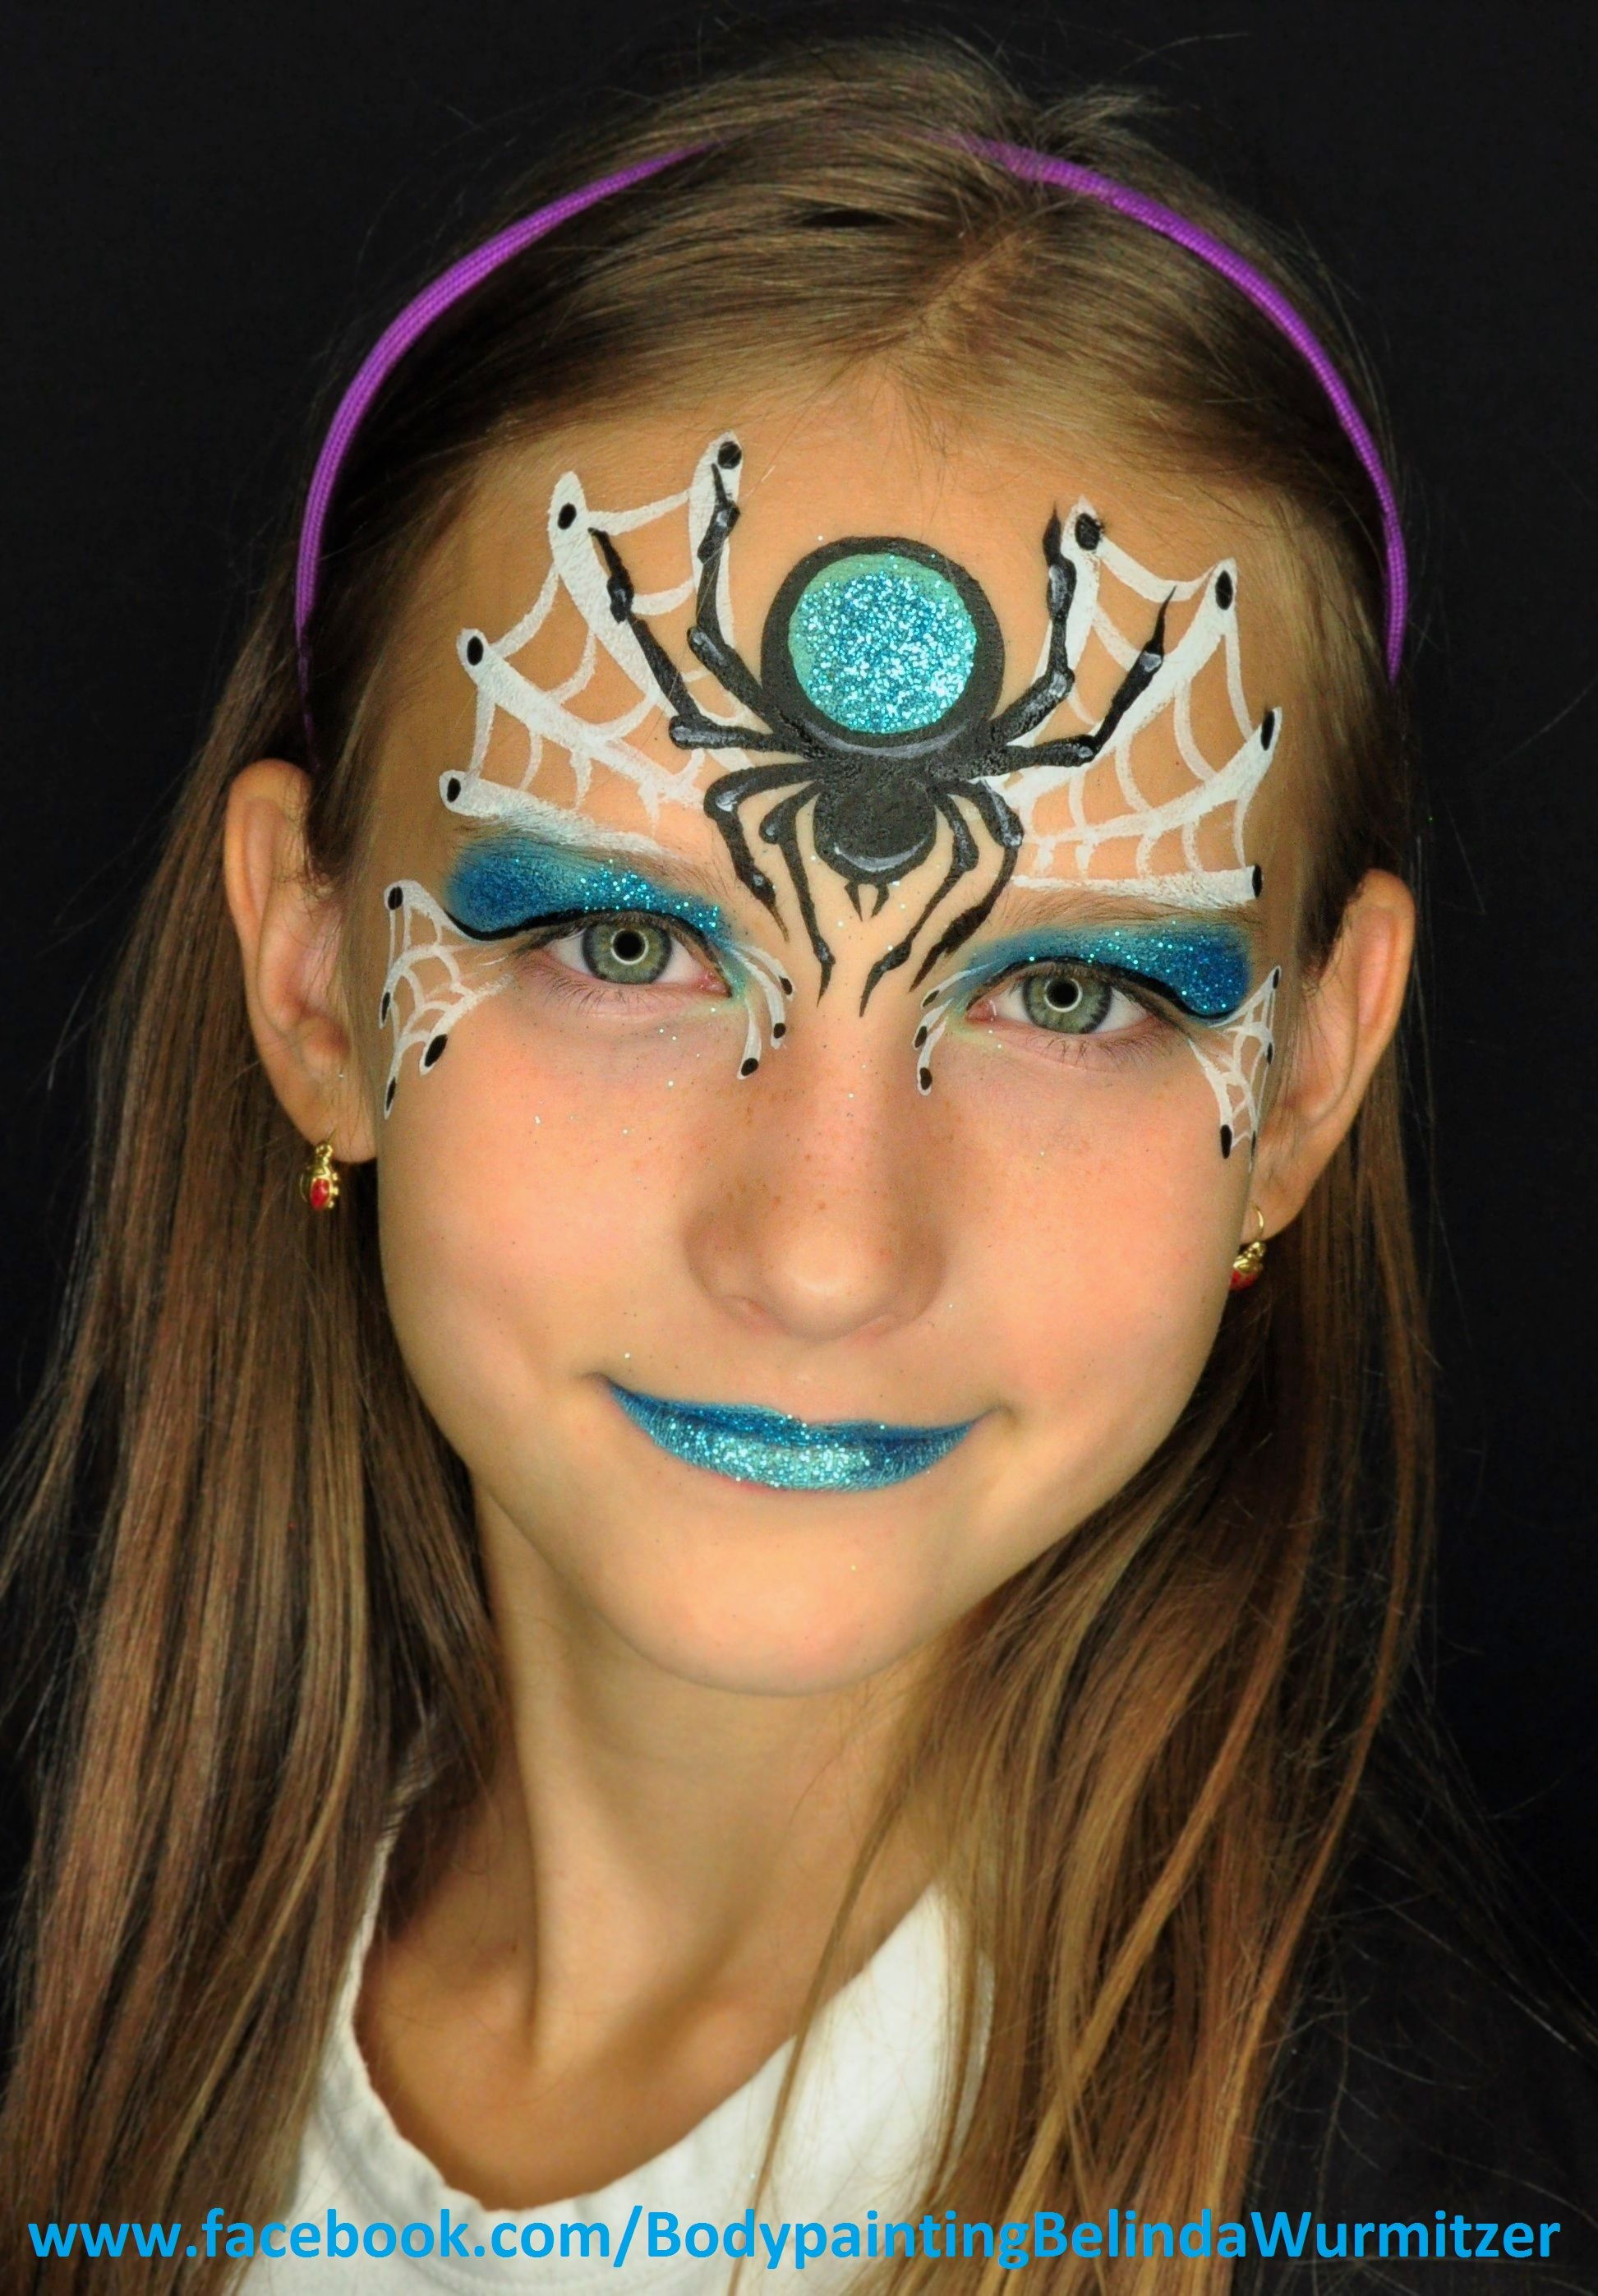 spinne spider artist belinda wurmitzer face paintings. Black Bedroom Furniture Sets. Home Design Ideas